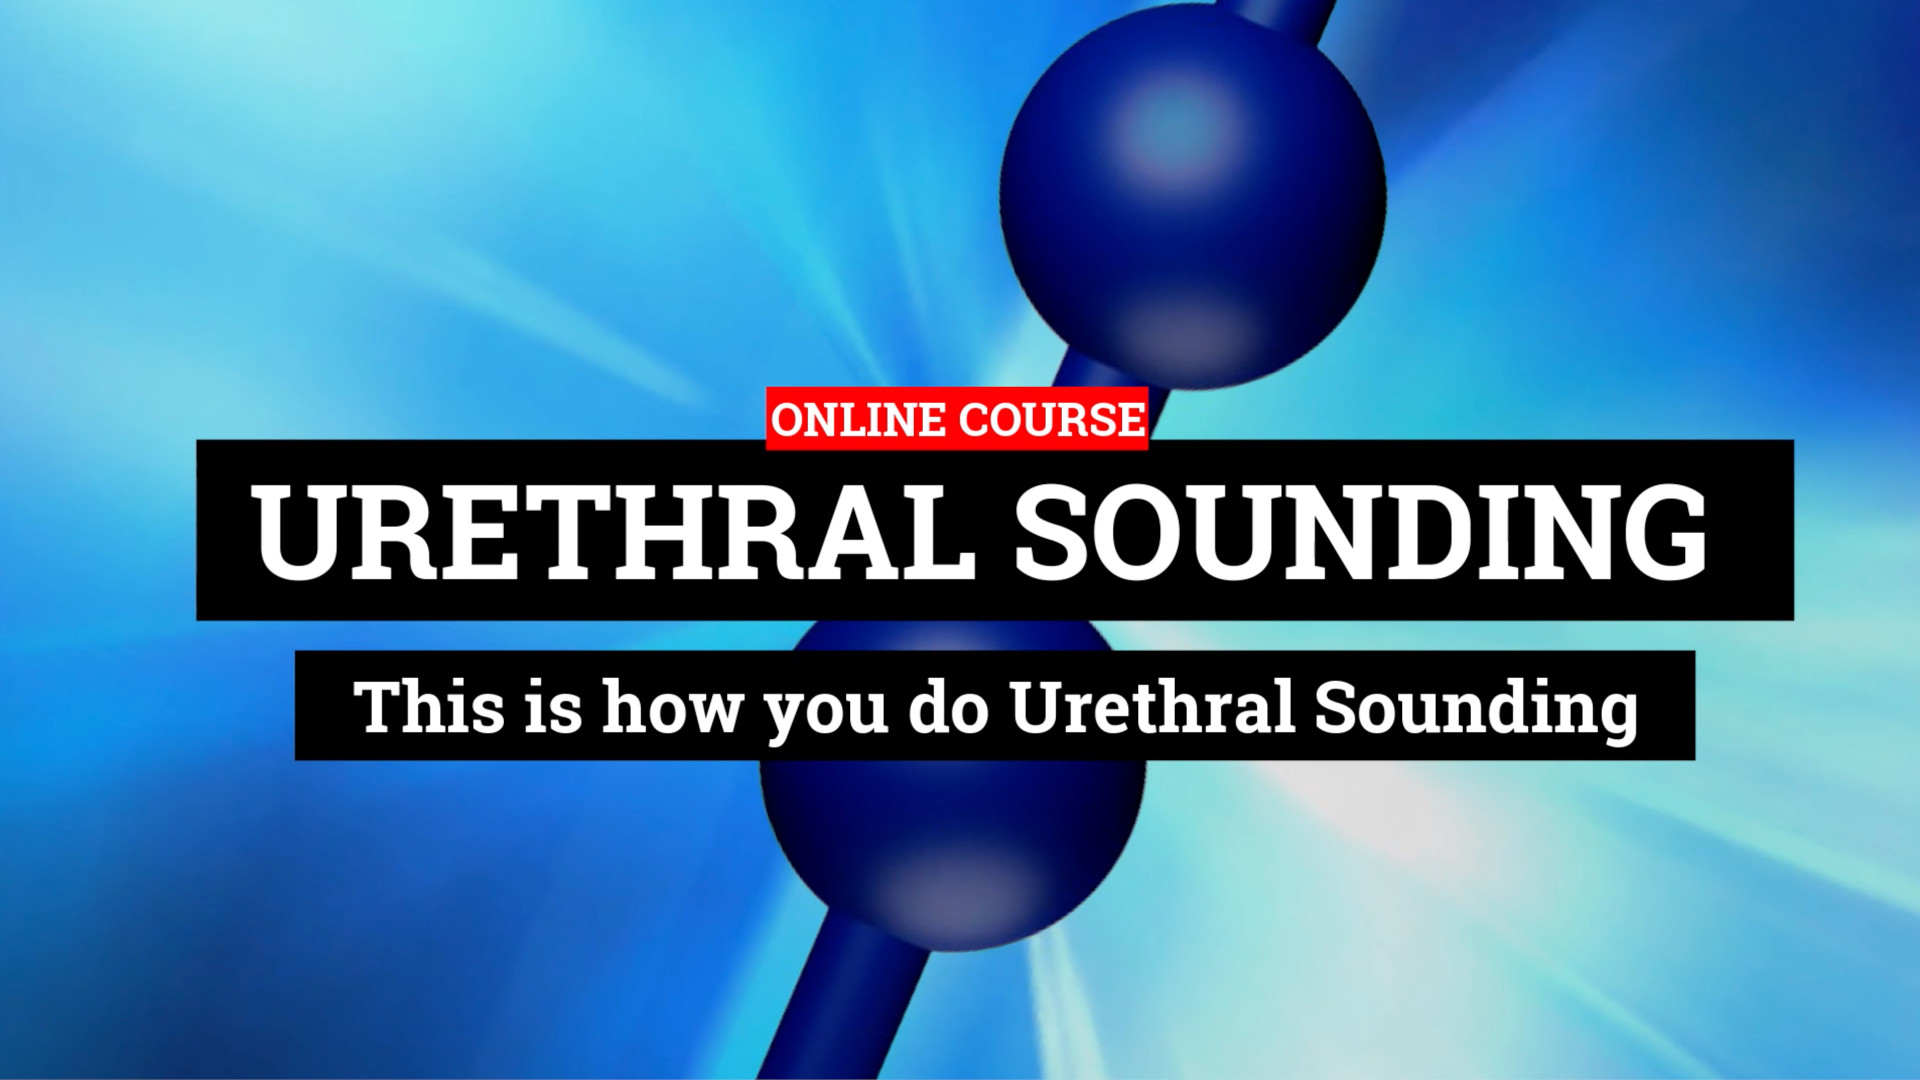 Urethral Sounding Guide